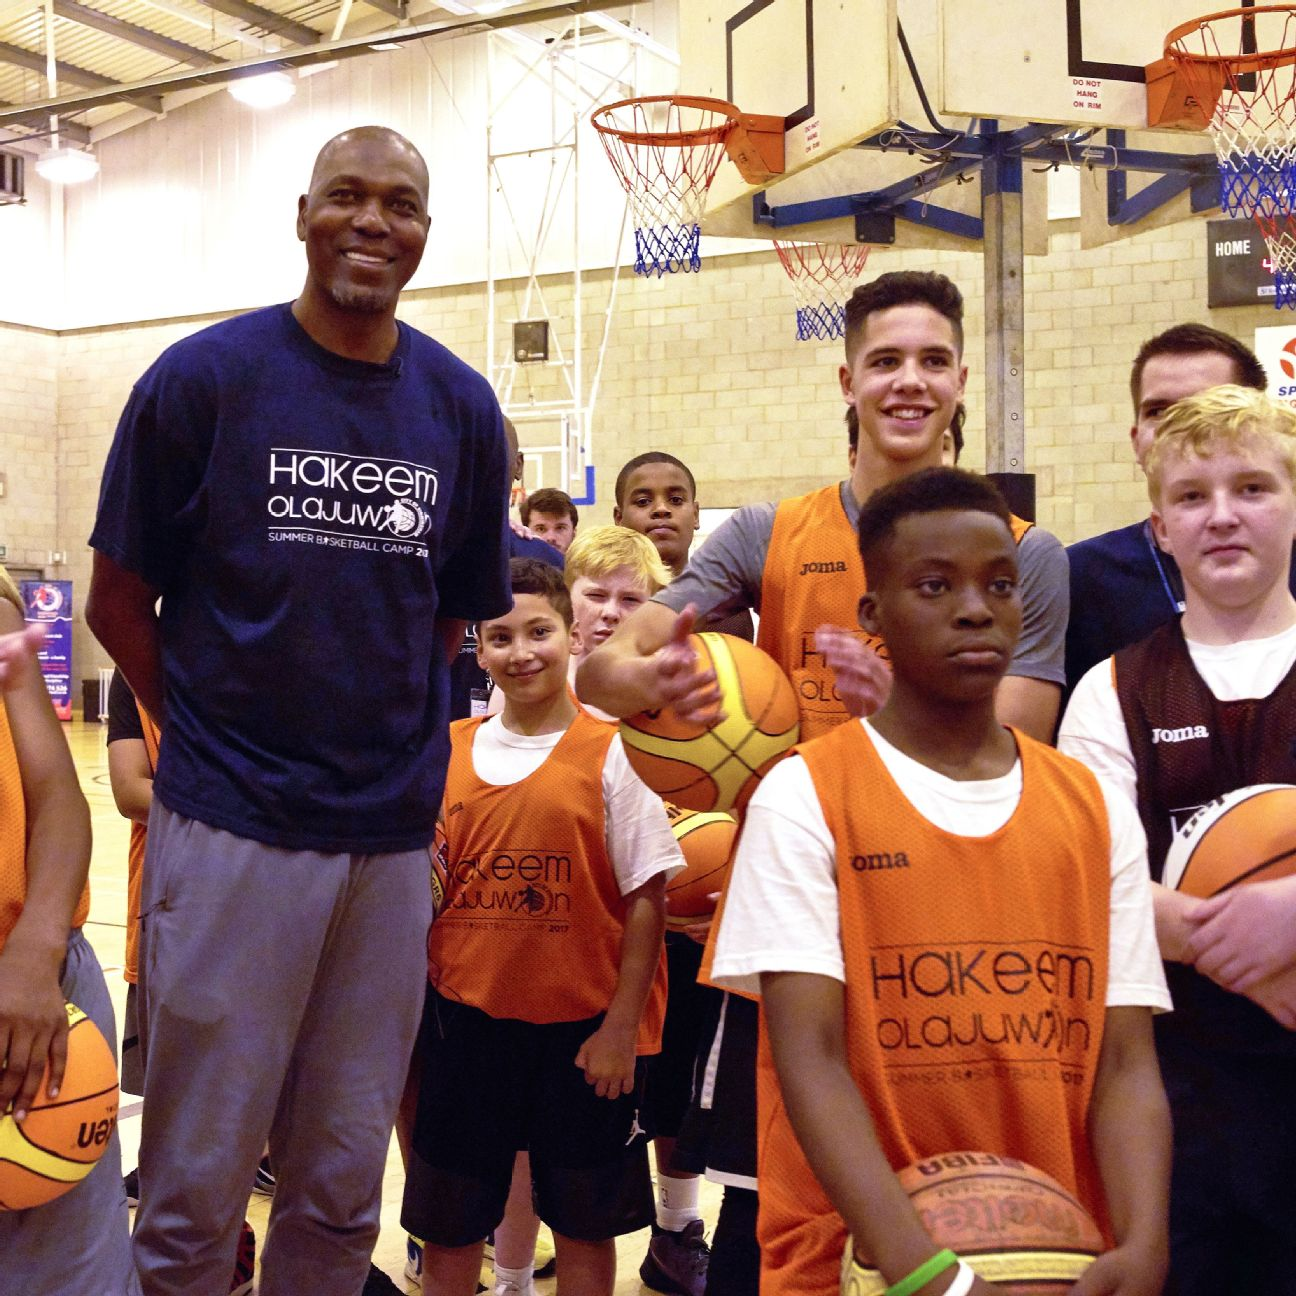 Houston Rockets Dream Shake: Hakeem Olajuwon's Basketball Camp Is A Dream Come True For